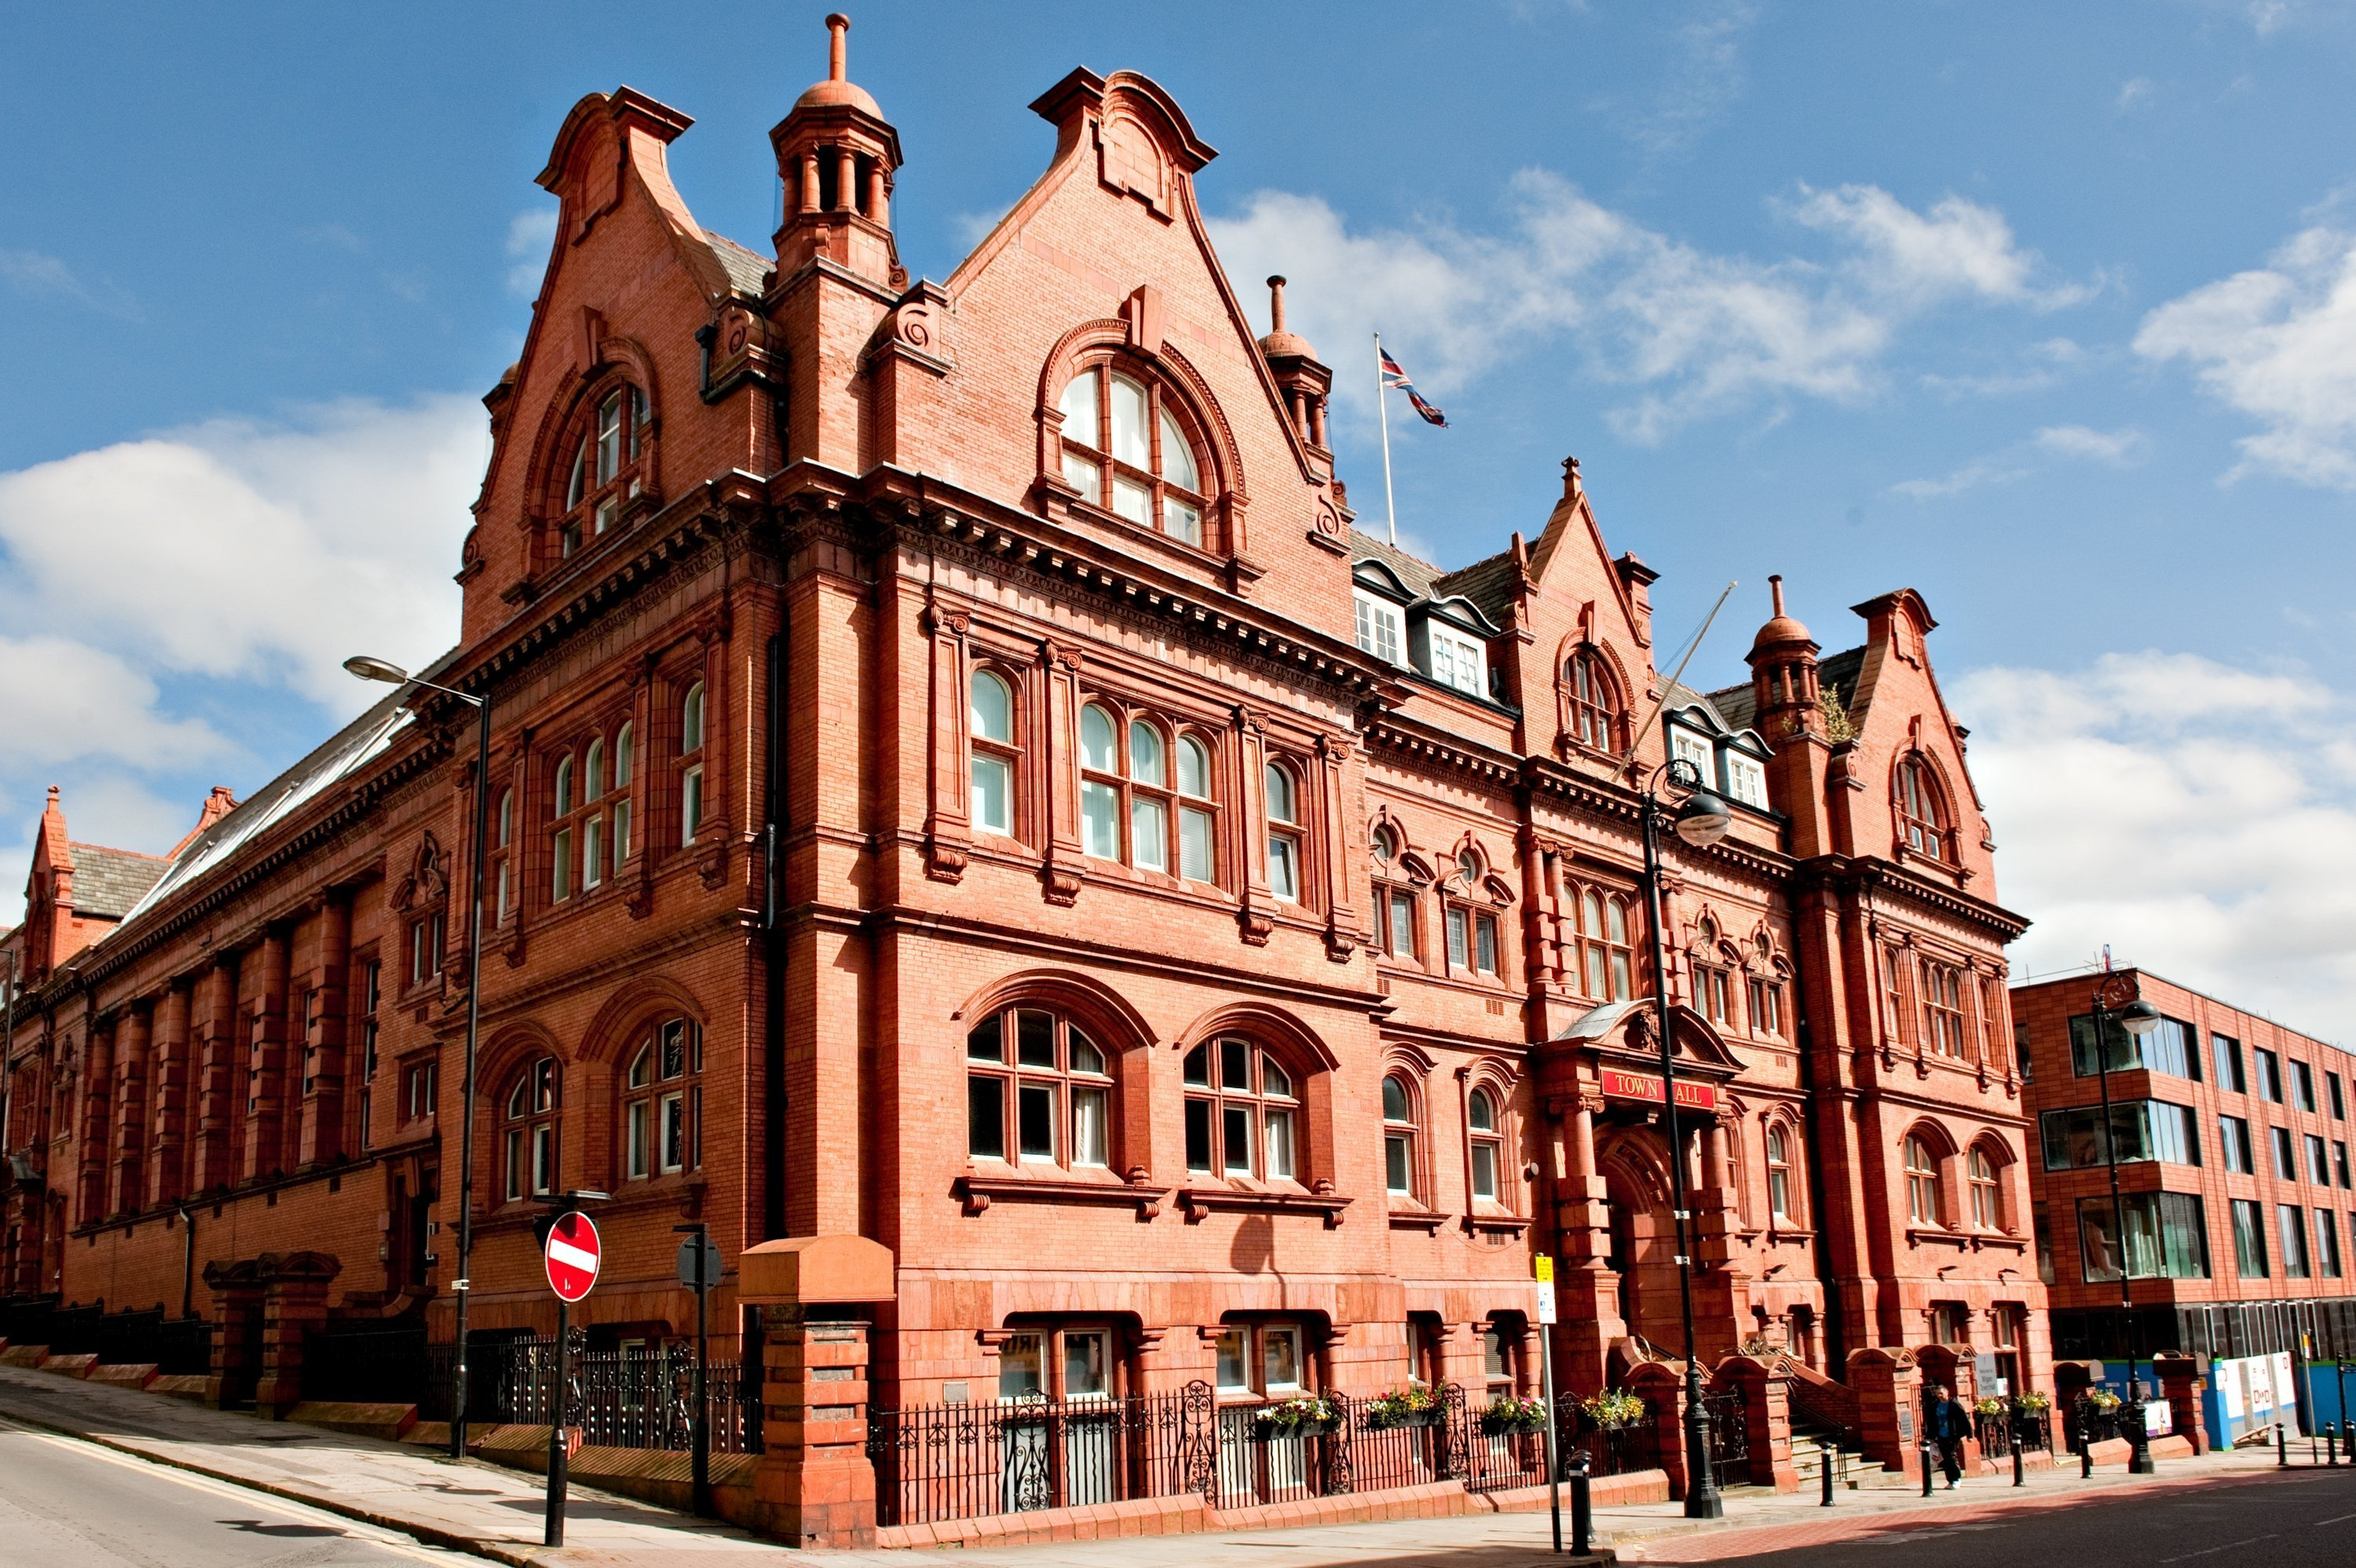 Potterton Commmercial boilers show major energy savings following refurbishment of Wigan Town Hall's heating system